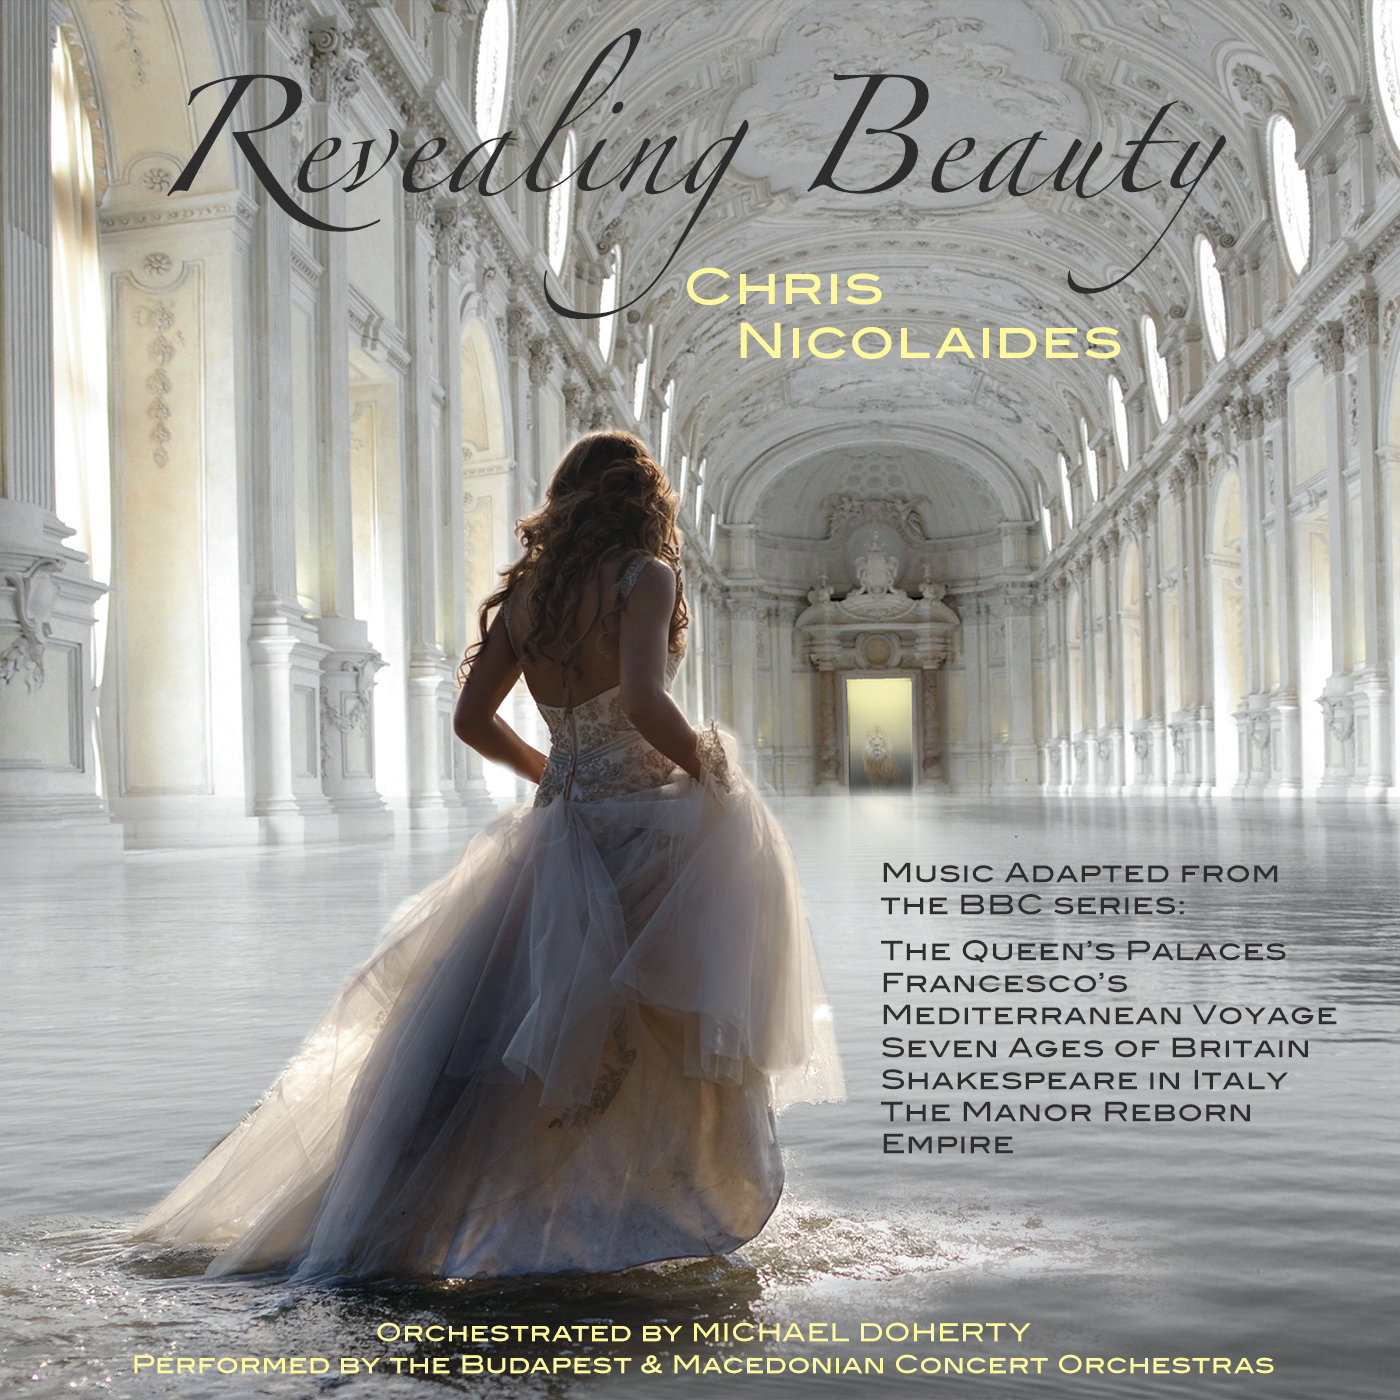 Chris Nicolaides - Revealing Beauty